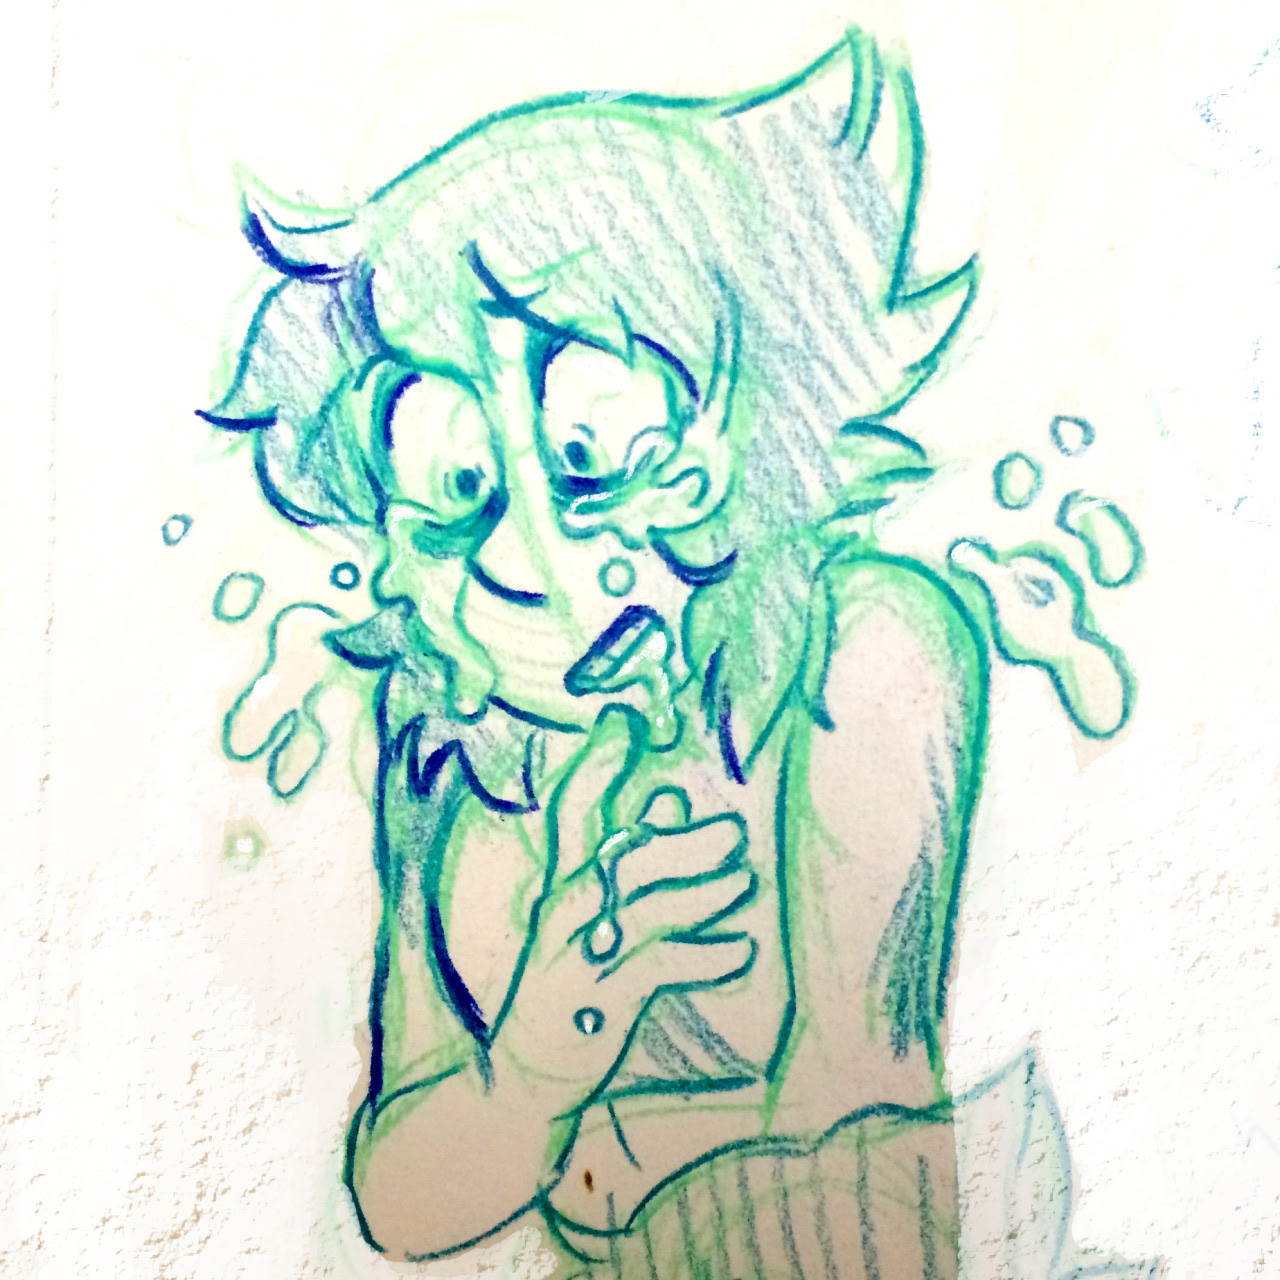 Weather's got me moody so here's some venty Lapis doodles